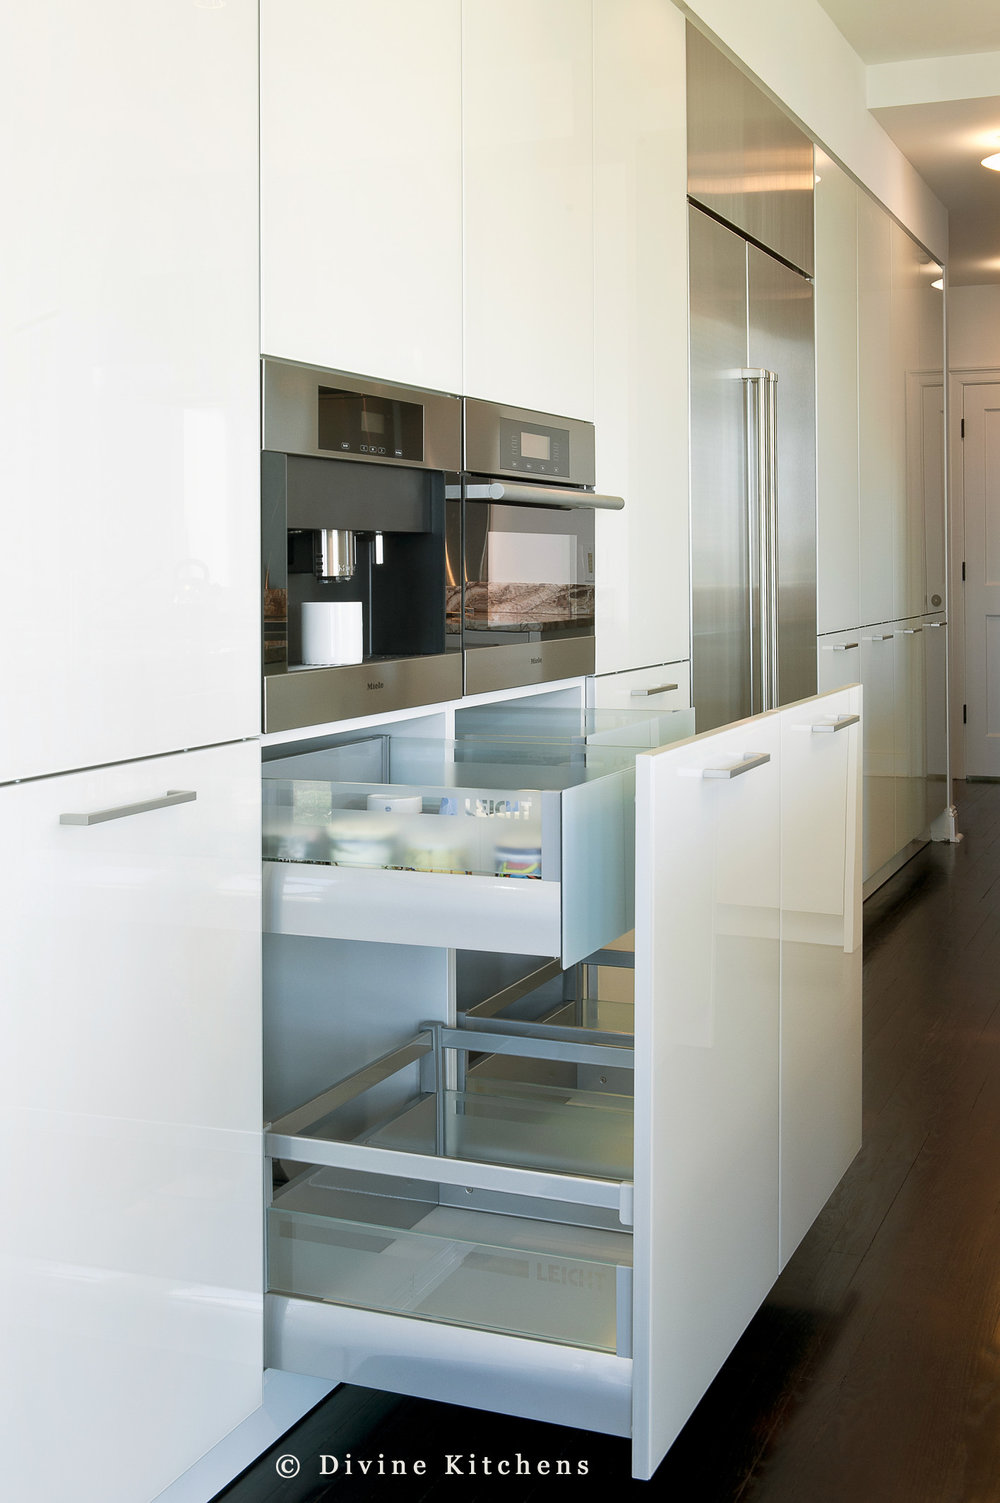 Modern leicht kitchen with high gloss lacquer cabinets. Marble countertops and wolf appliances. Interior drawer organization.